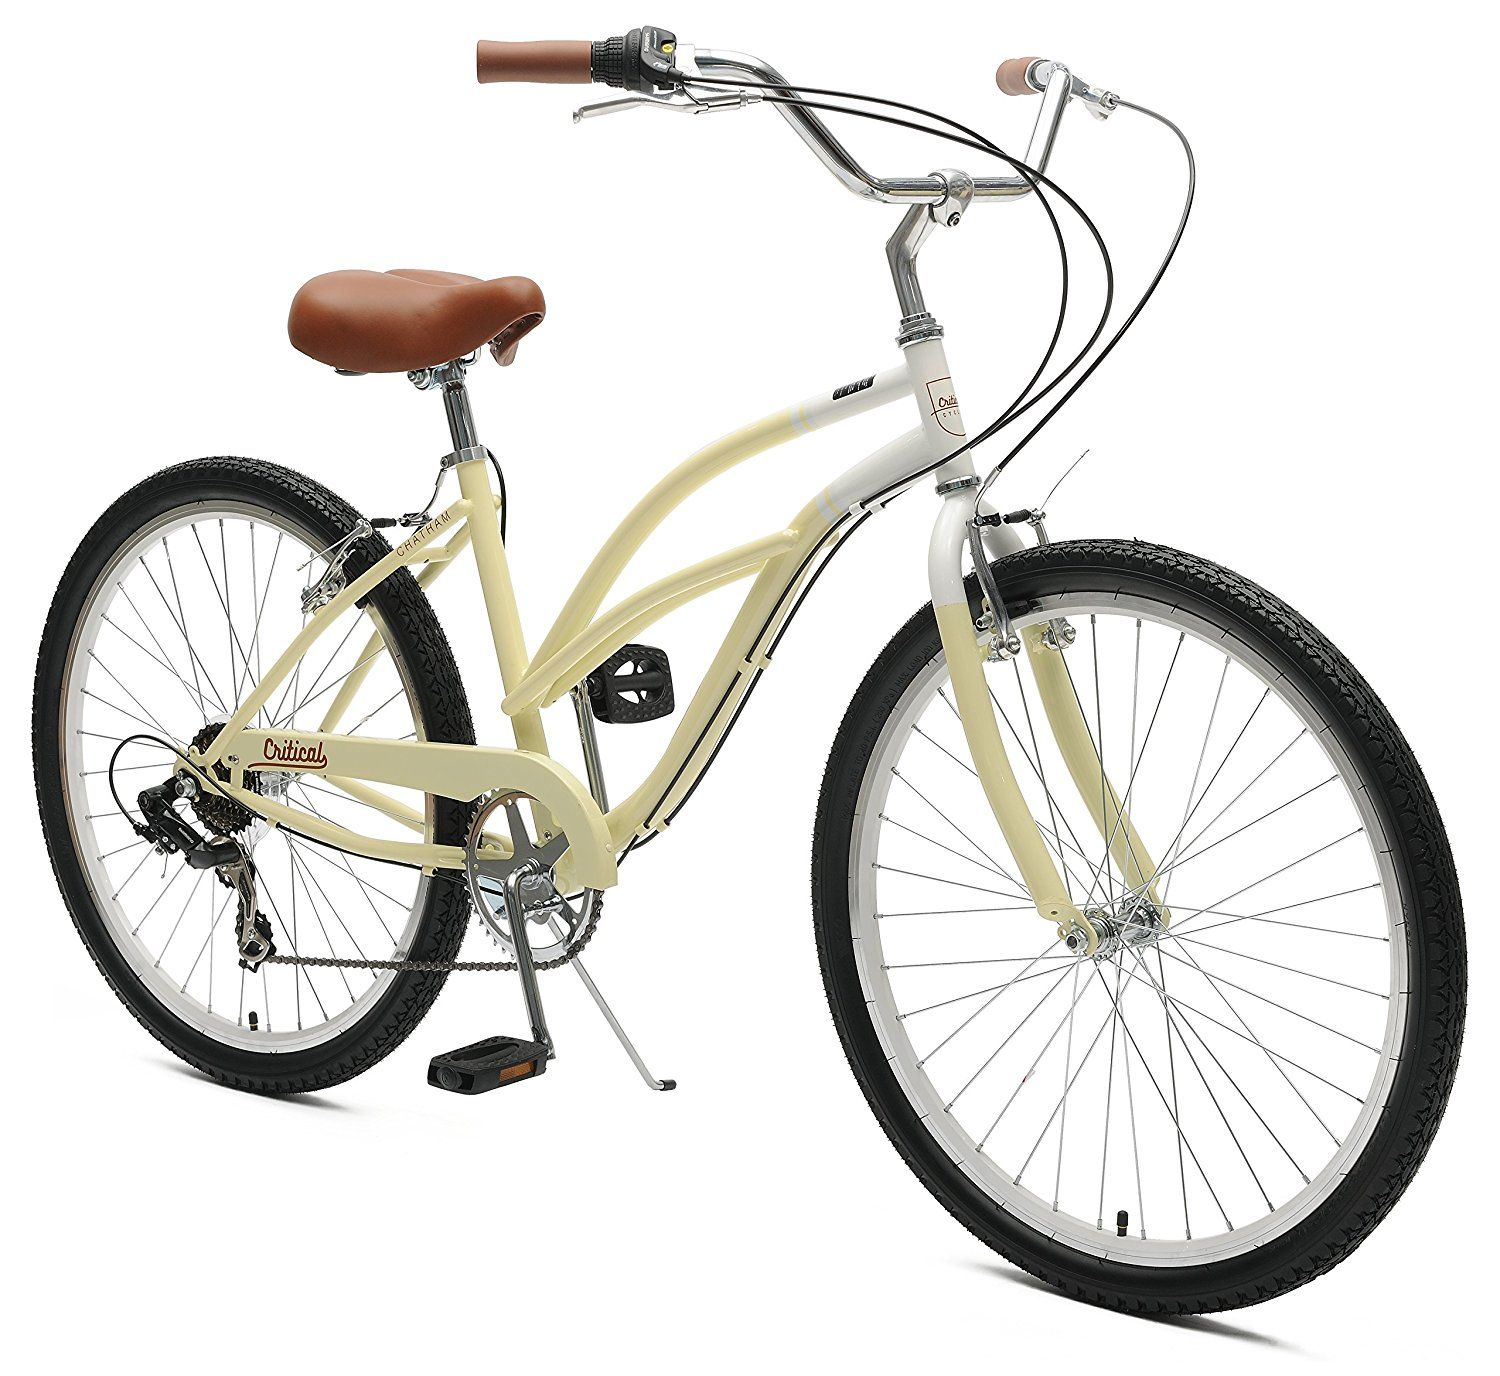 Top 10 Best cruiser bikes reviews | Top 10 Best cruiser bikes ...